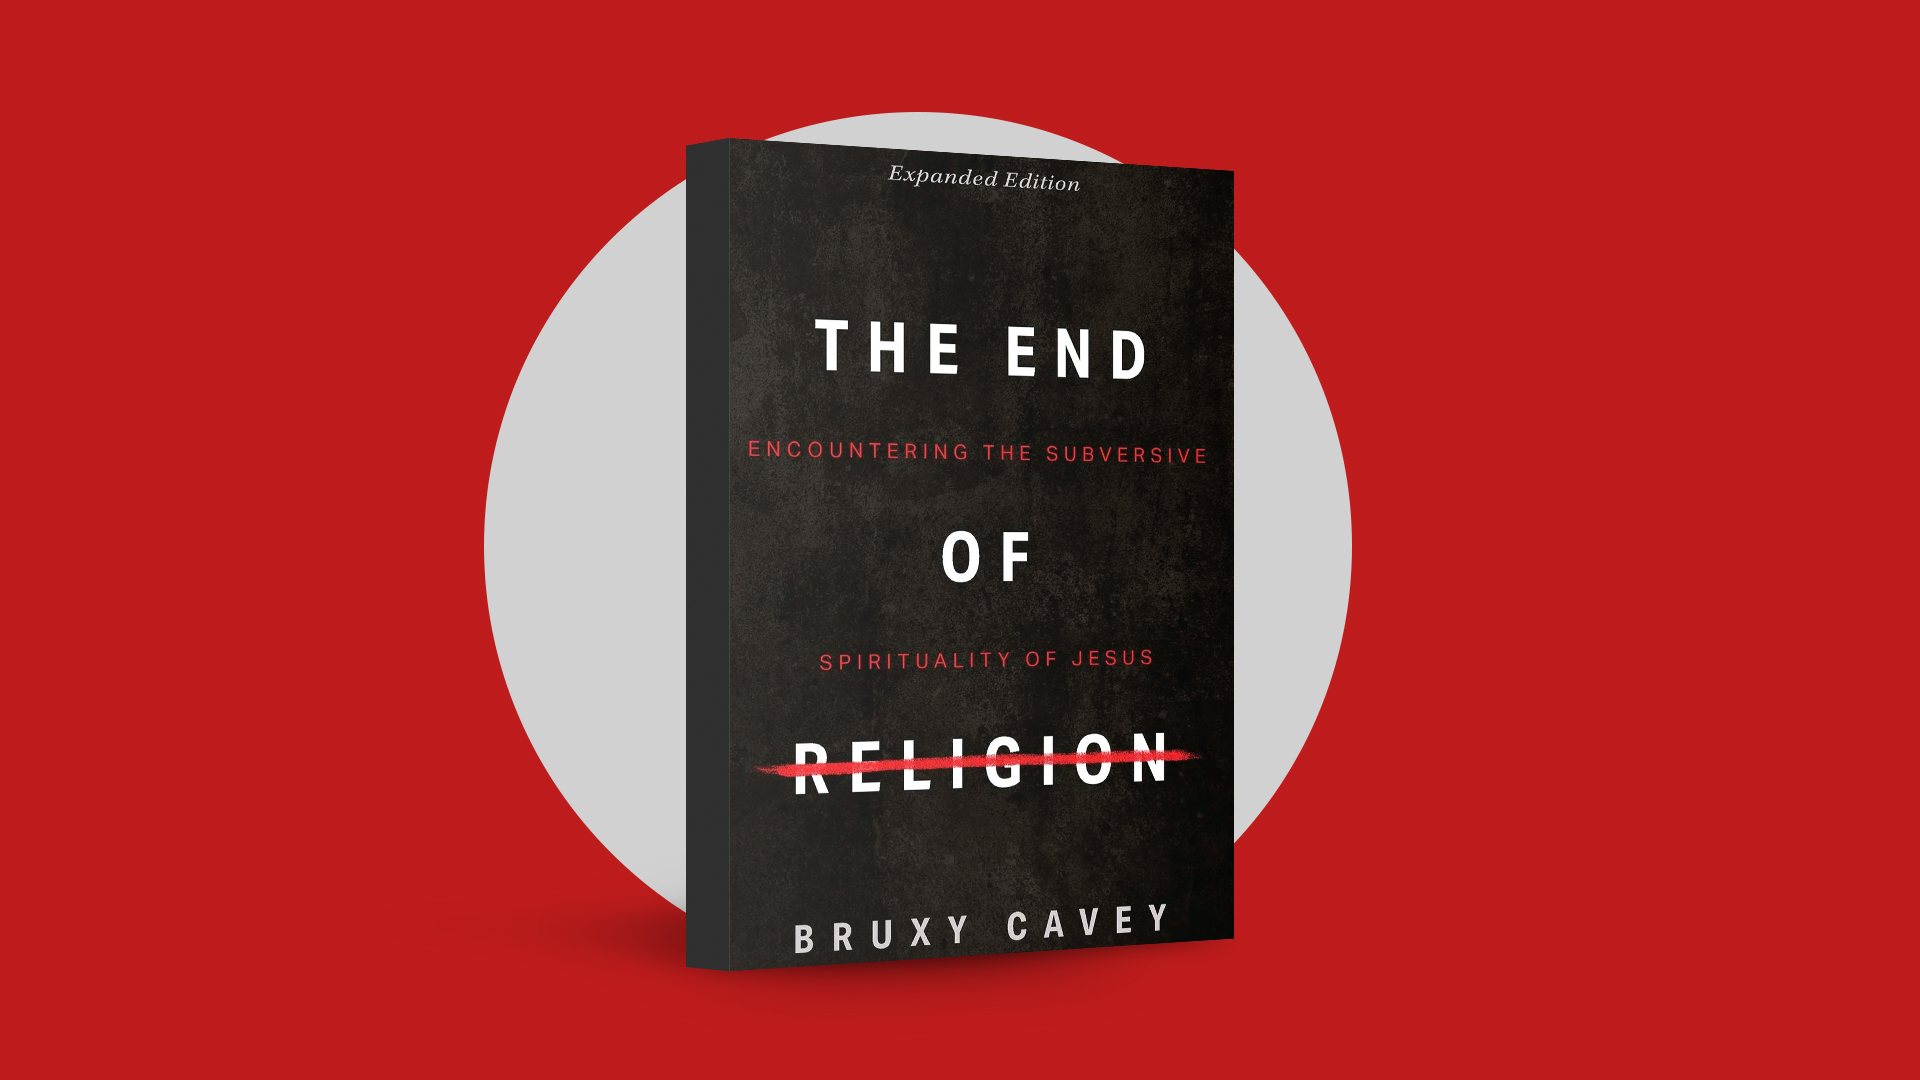 The End of Religion: Encountering the Subversive Spirituality of Jesus by Bruxy Cavey